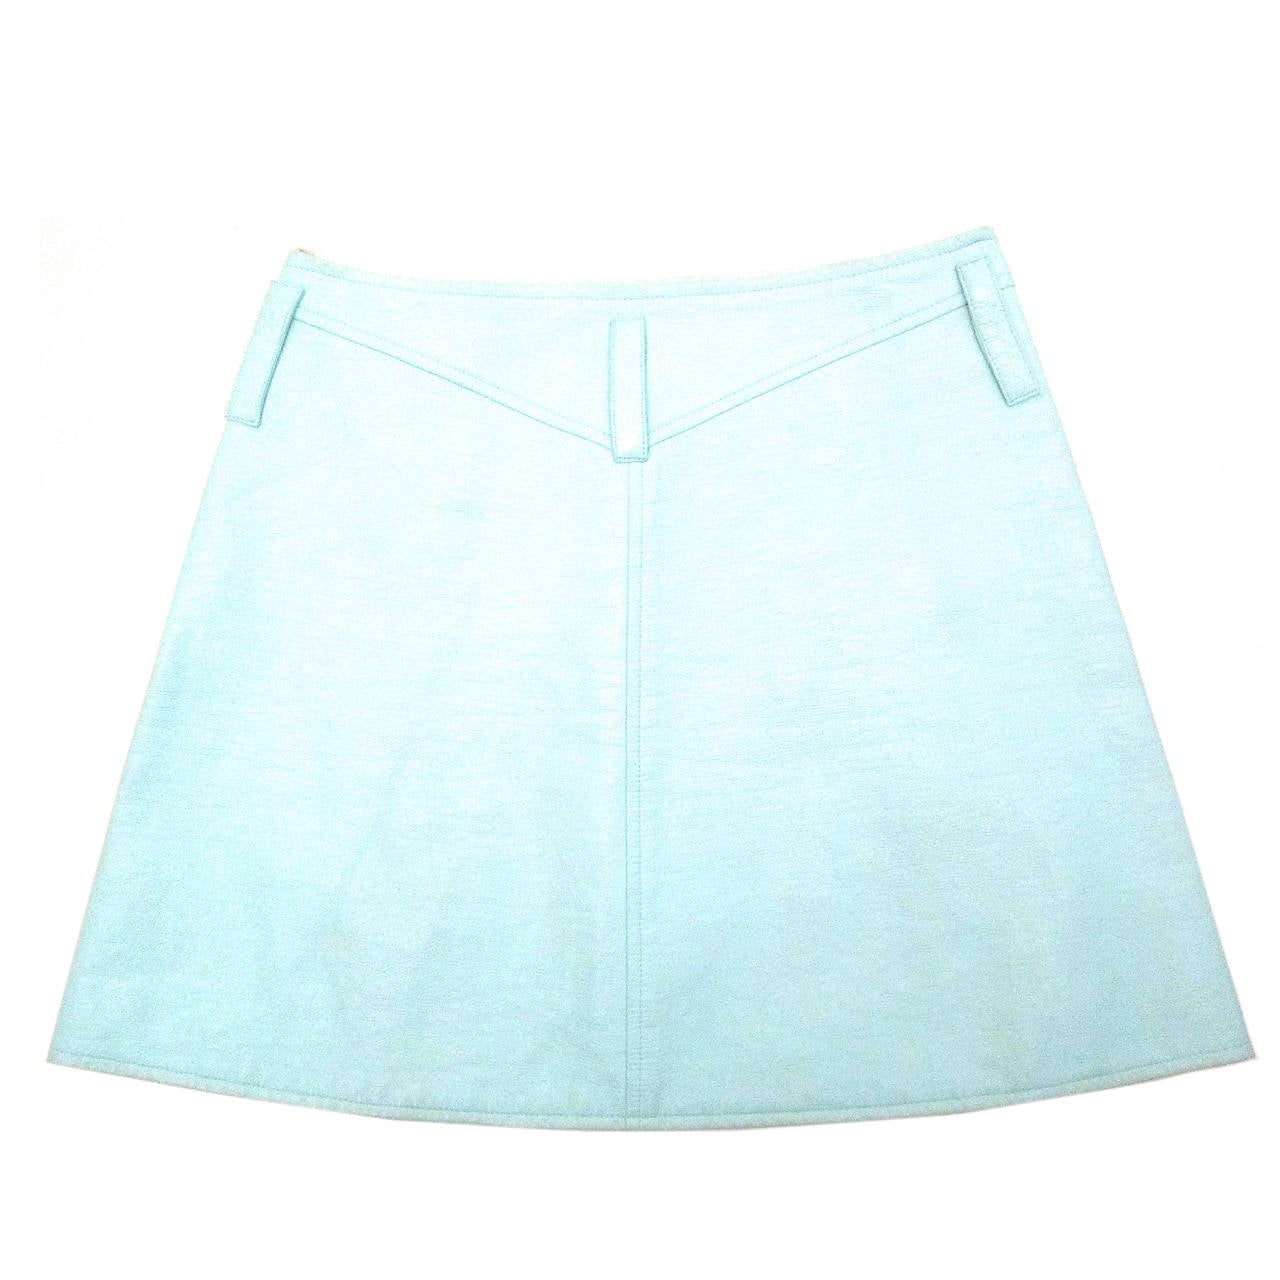 Courreges Sea Foam Aqua Mini Skirt